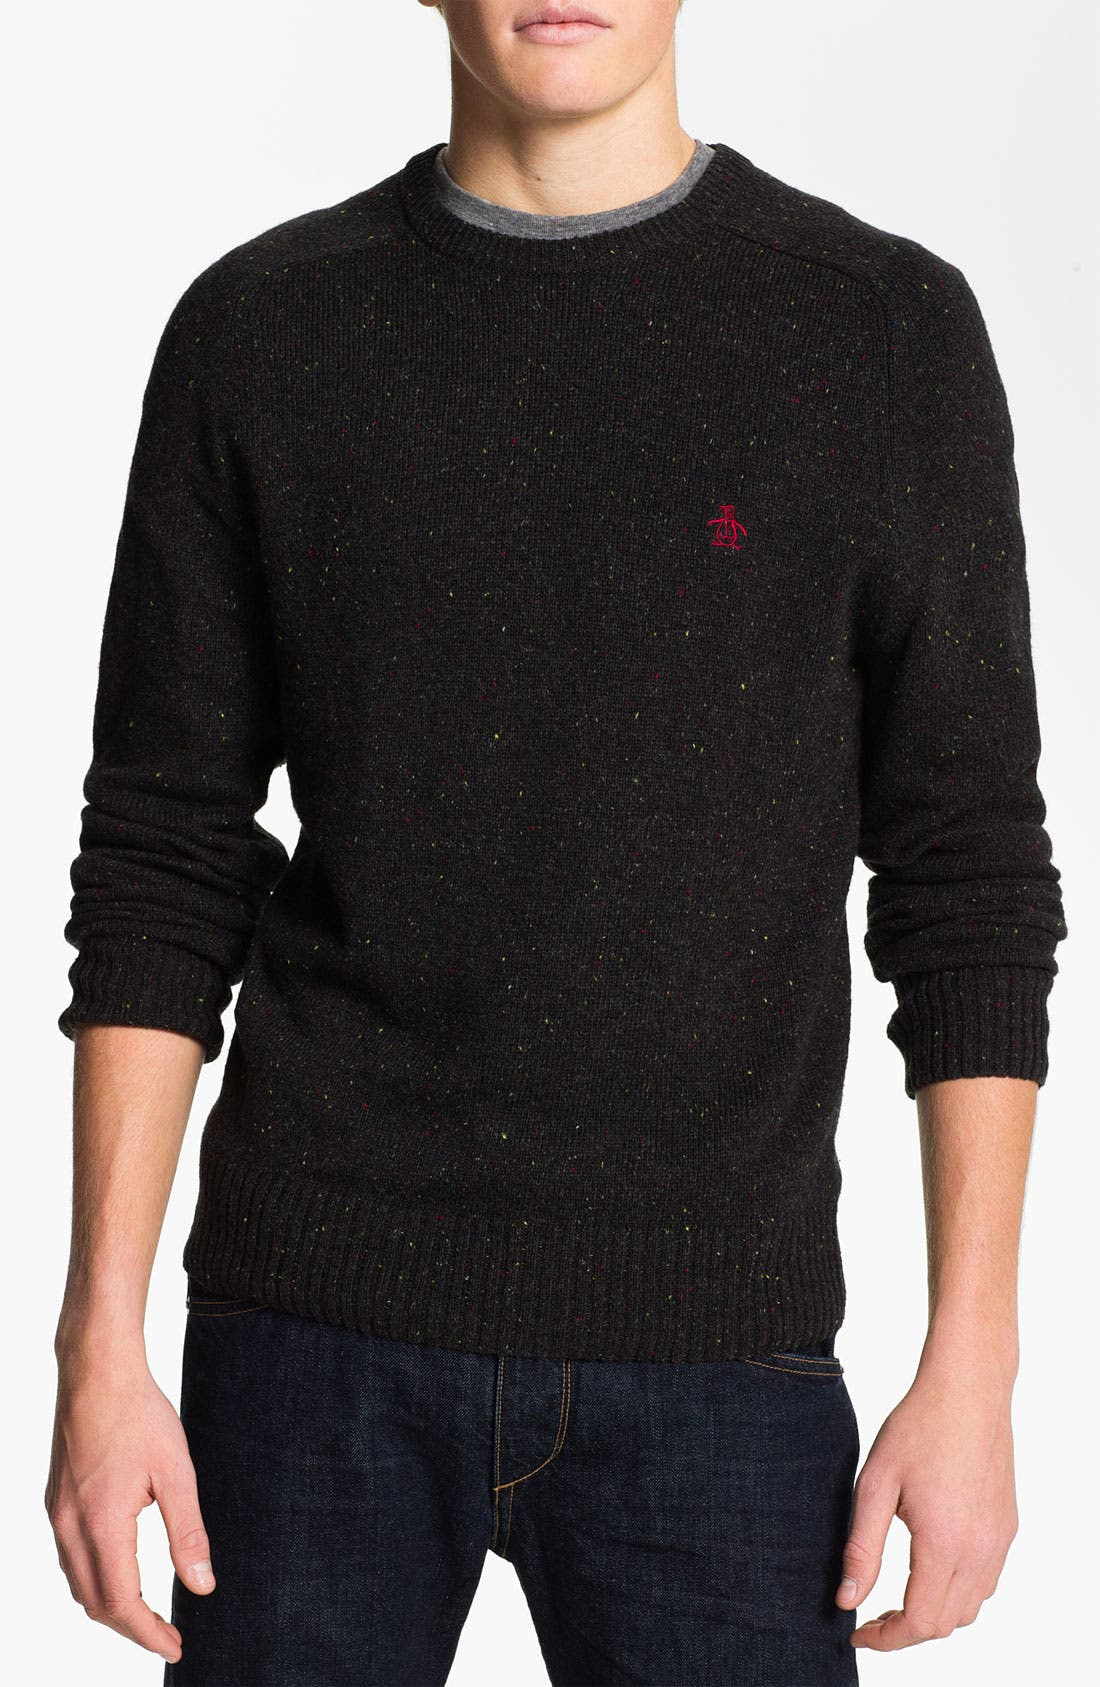 Main Image - Original Penguin Speckled Knit Crewneck Sweater